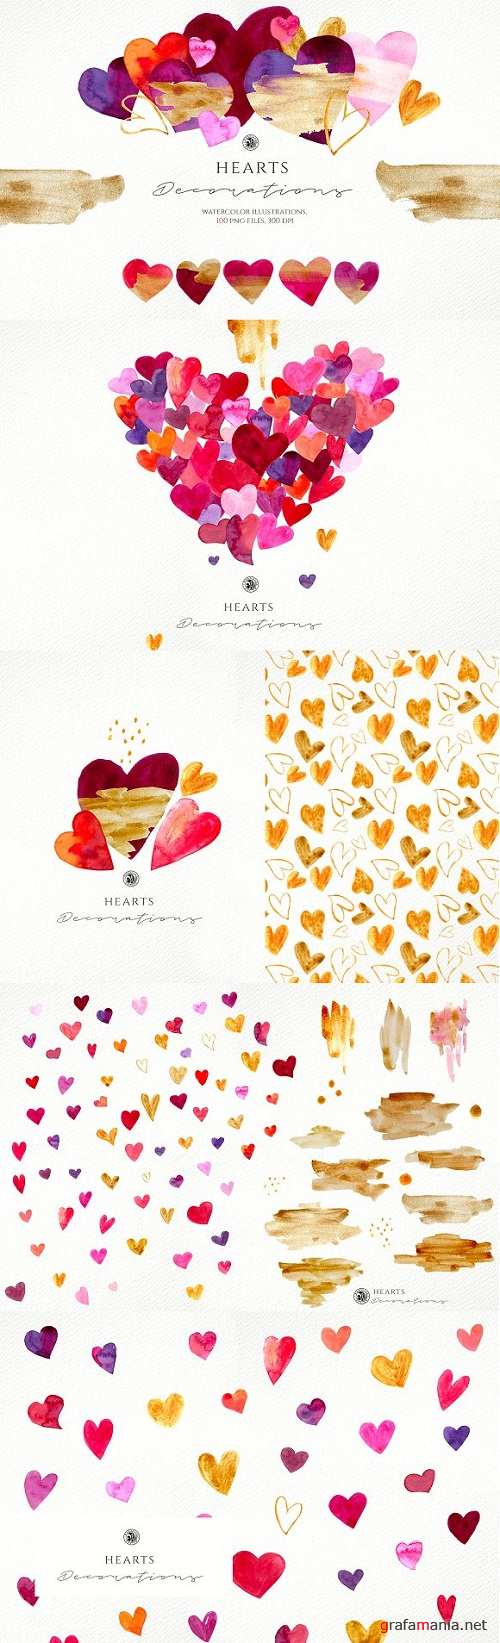 Hearts - watercolor illustrations - 3221567